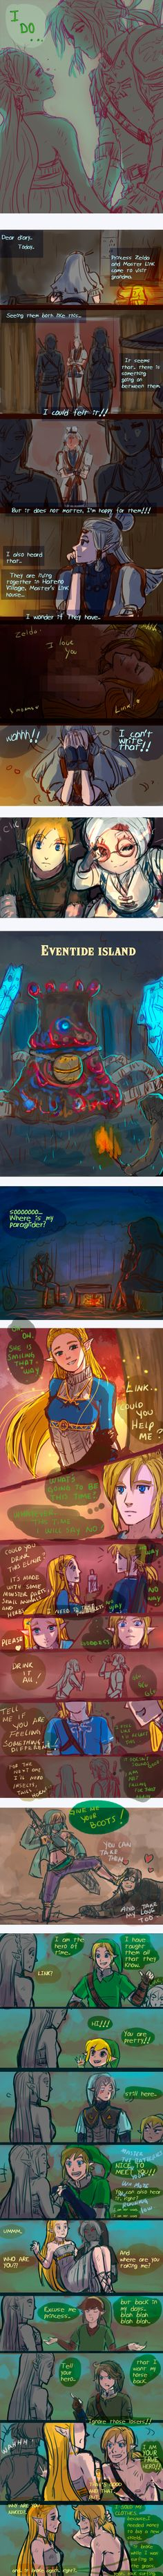 +(- The legend of Zelda doodles [15] -)+ (BOTW) by AngelJasiel